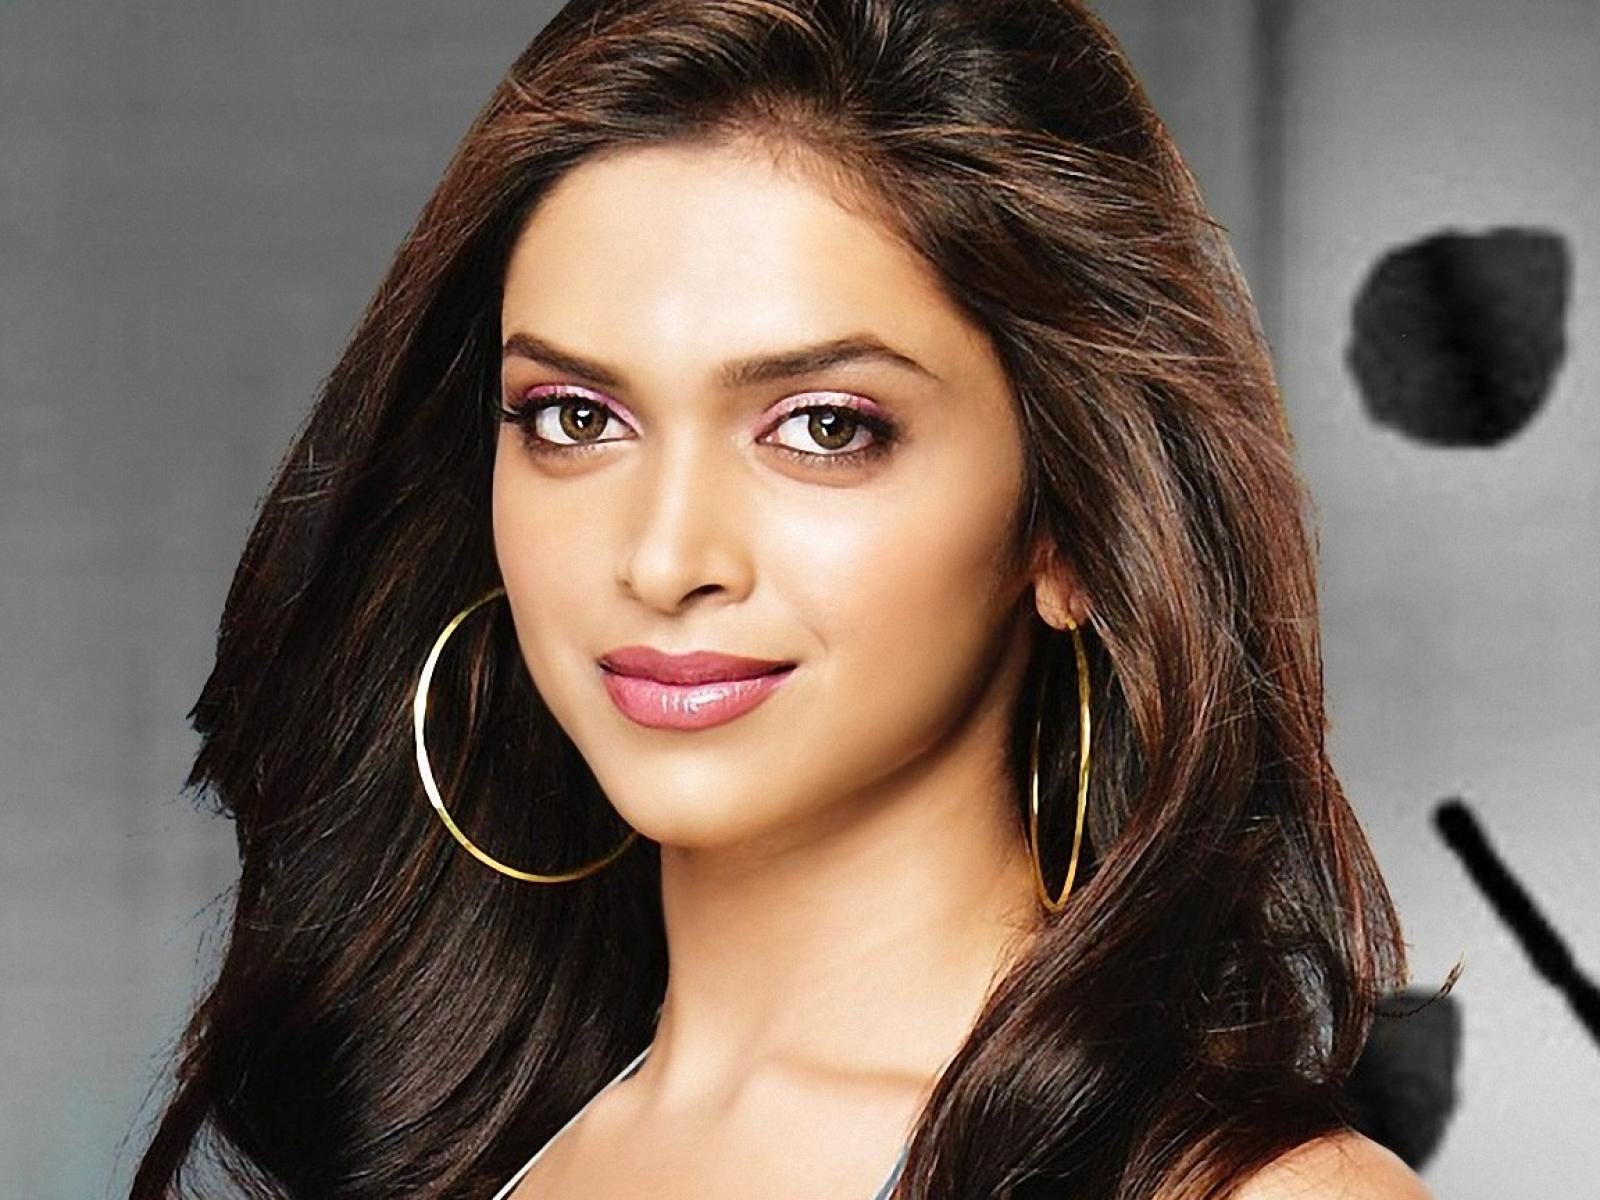 Ethnic background of celebrities - Deepika